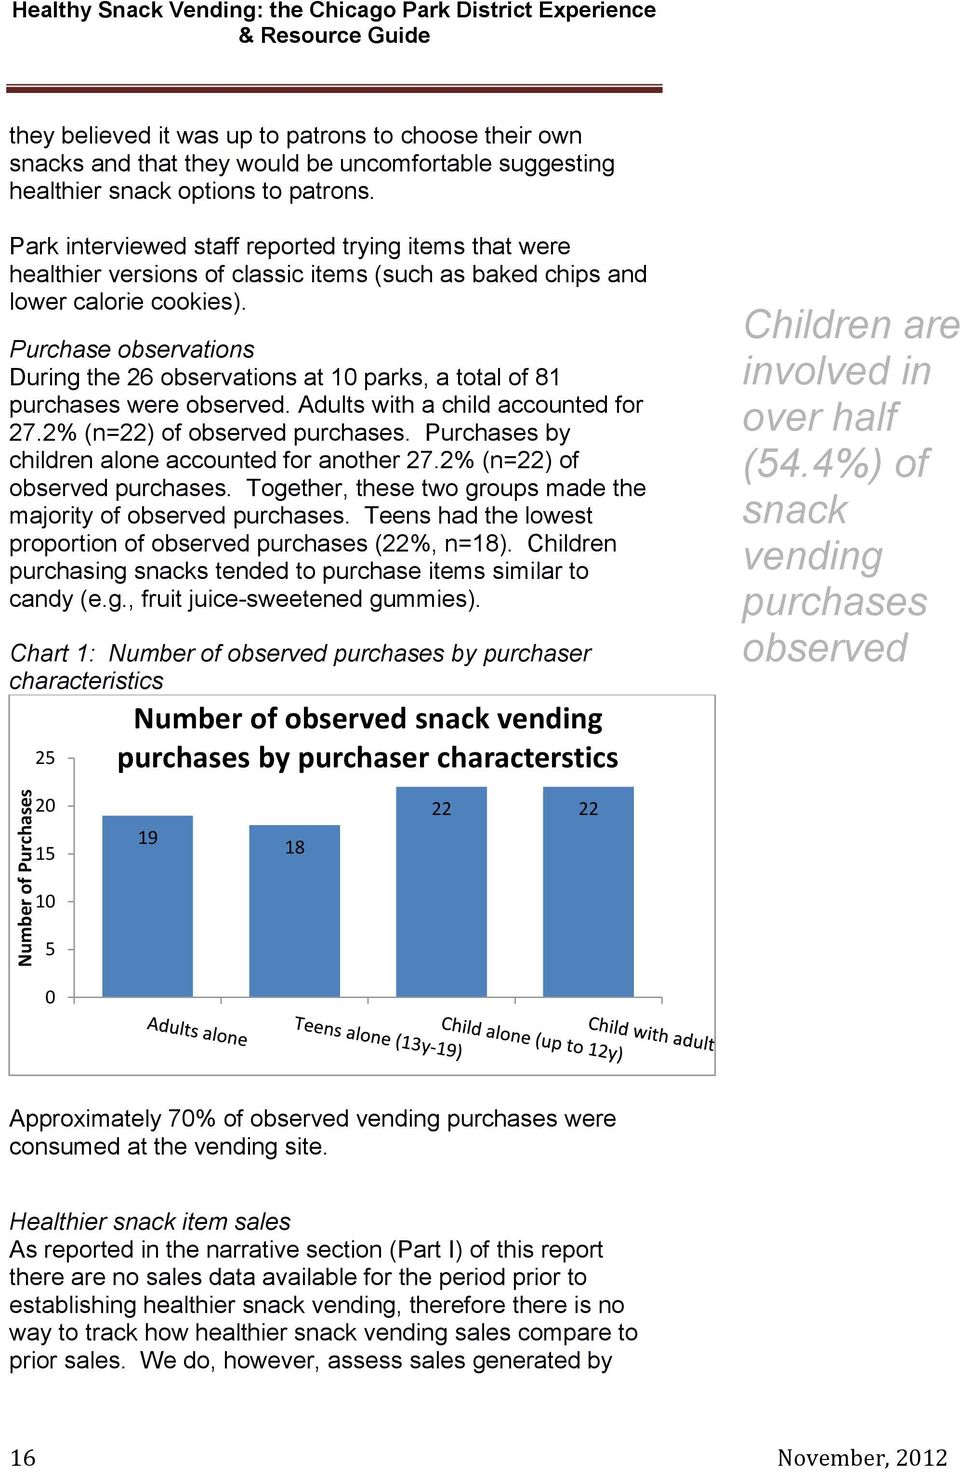 Purchase observations During the 26 observations at 10 parks, a total of 81 purchases were observed. Adults with a child accounted for 27.2% (n=22) of observed purchases.